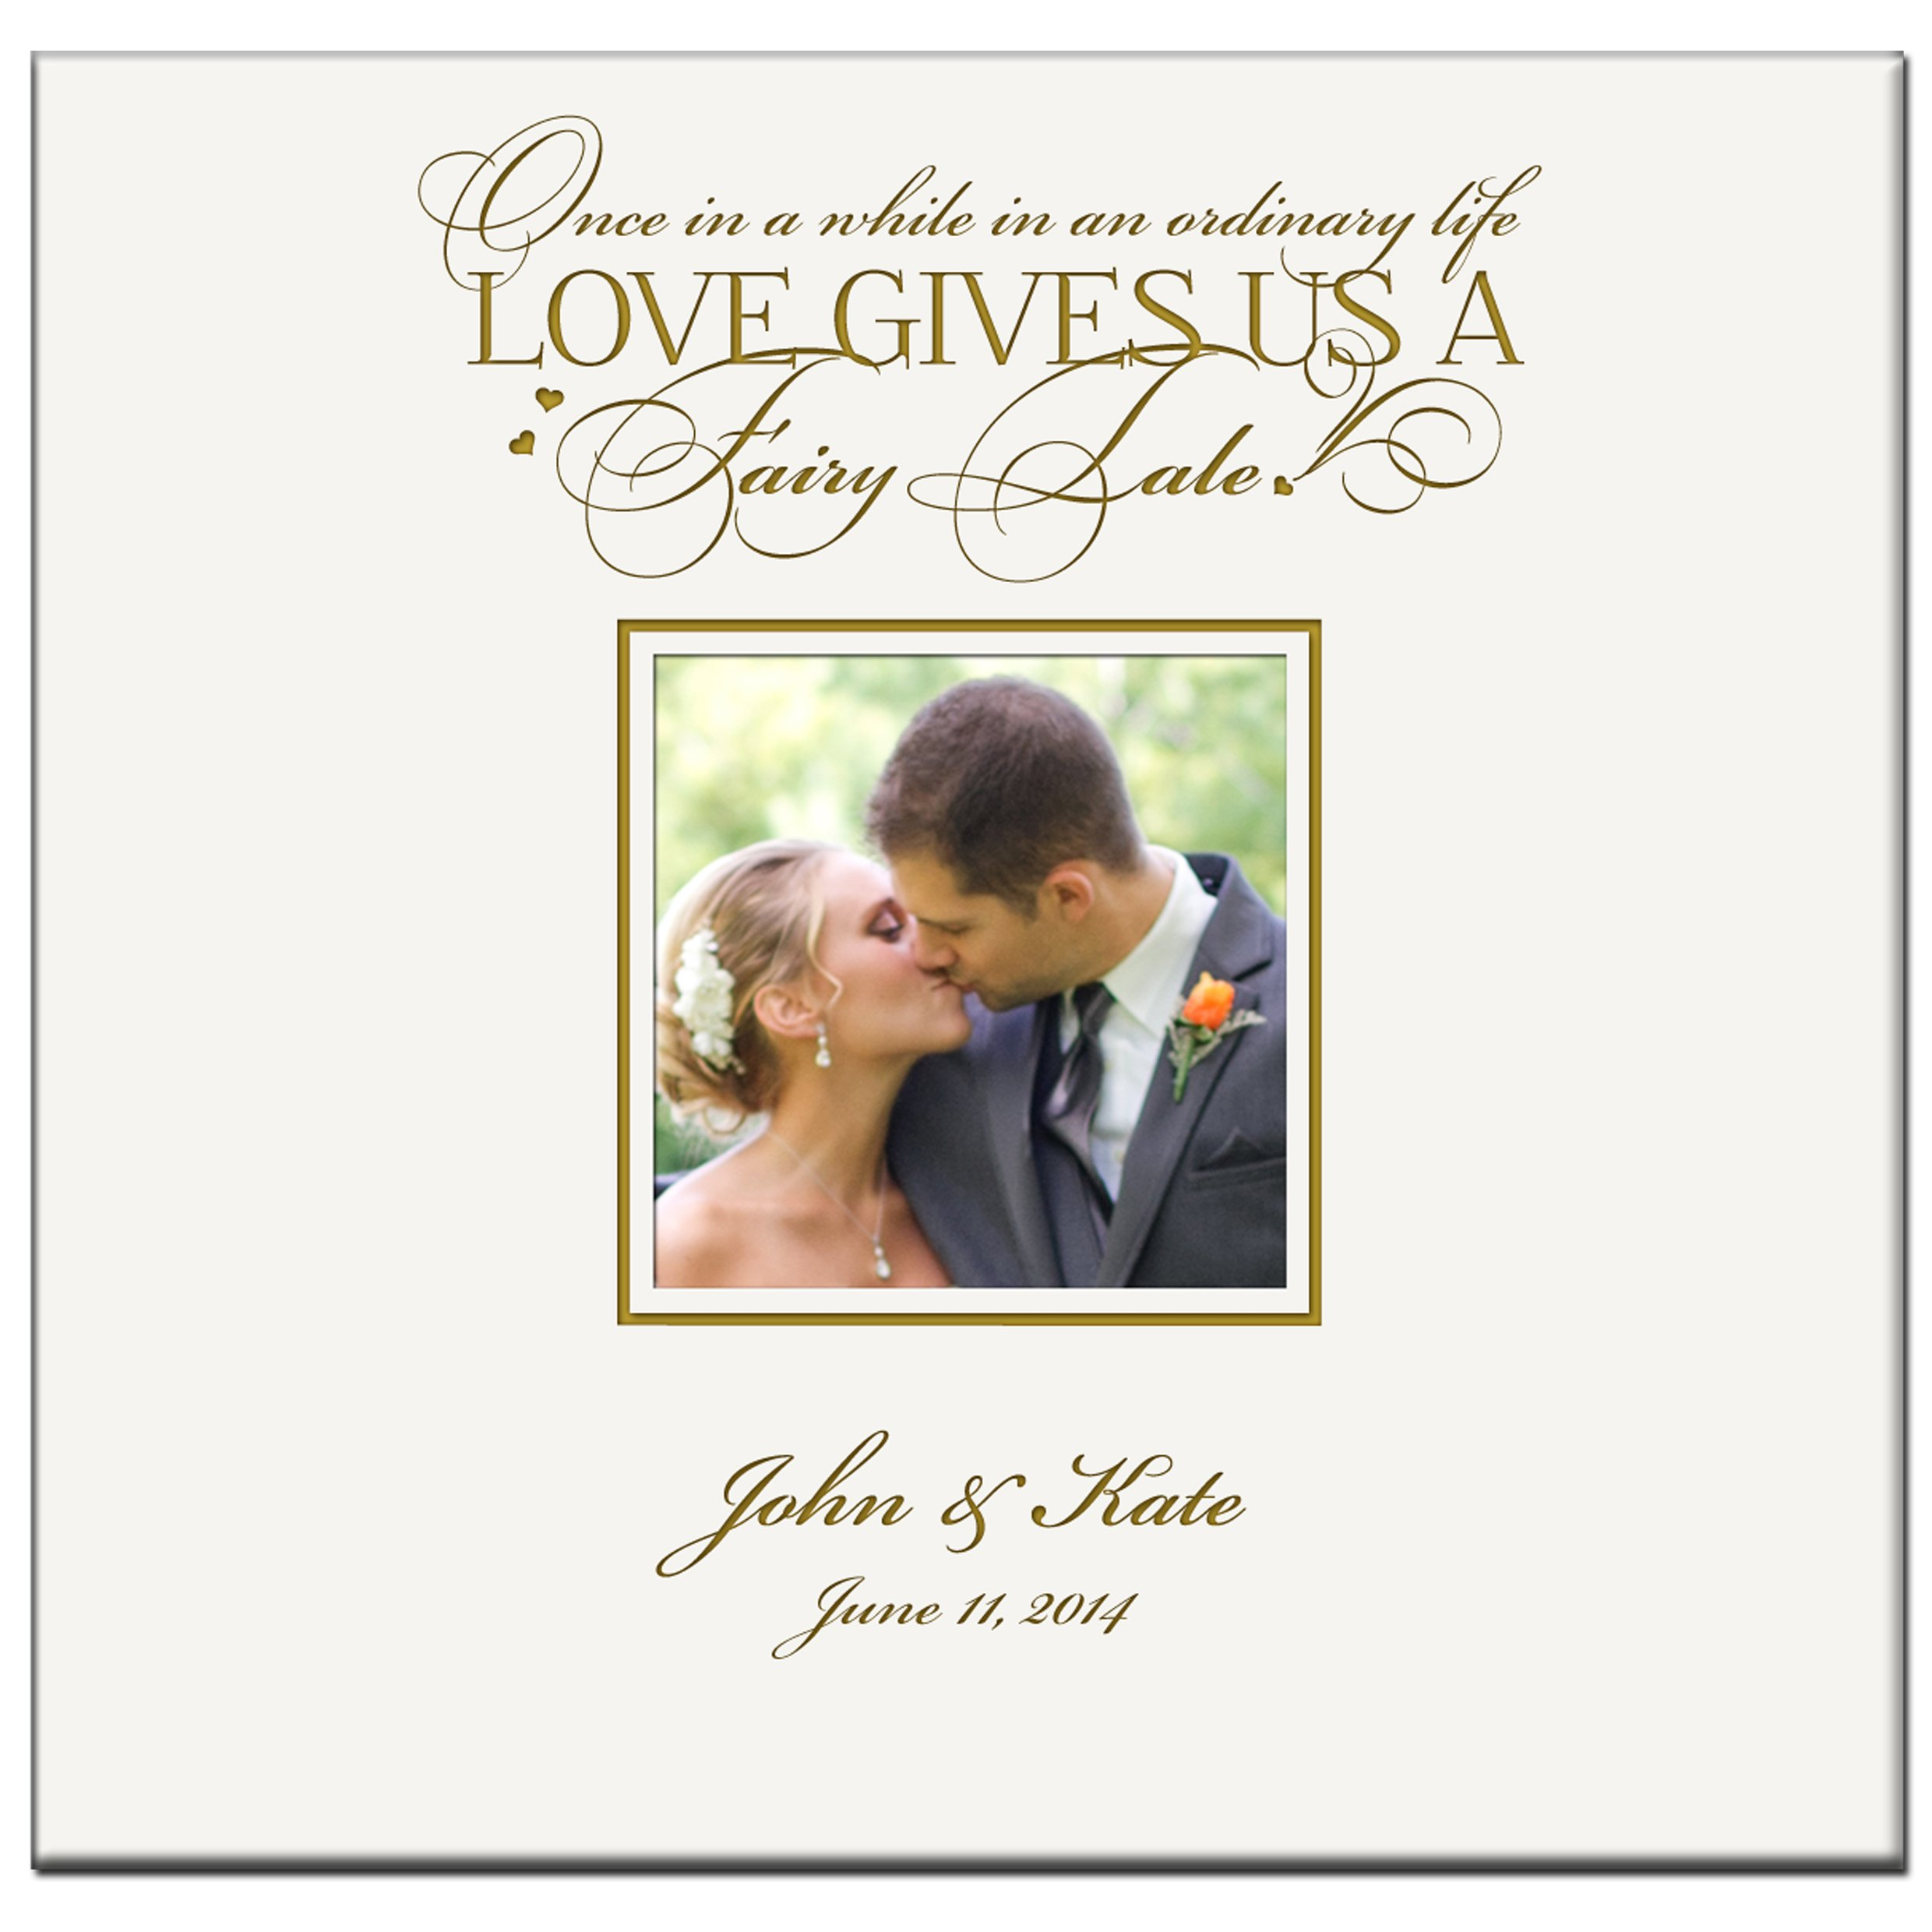 Personalized Mr & Mrs Wedding Anniversary Gifts Photo Album Custom Engraved Once in a While in an Ordinary Life Loves Gives You a Fairy Tale to Me Holds 200 4x6 Photos Wedding Gift Ideas